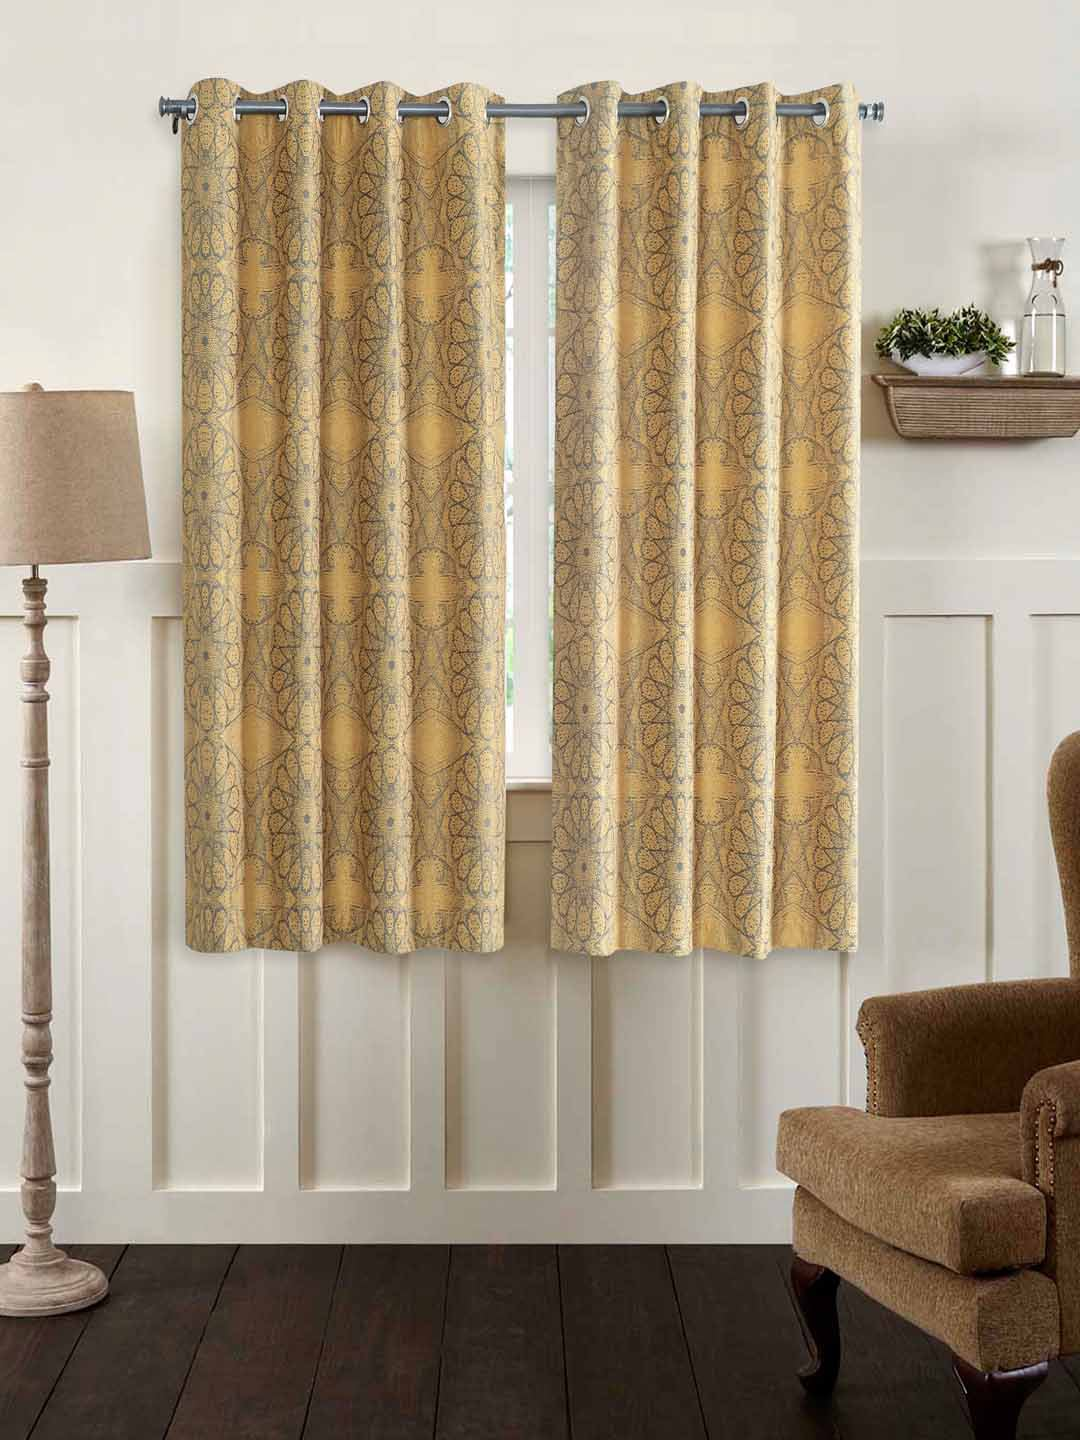 Buy curtains stylish online india